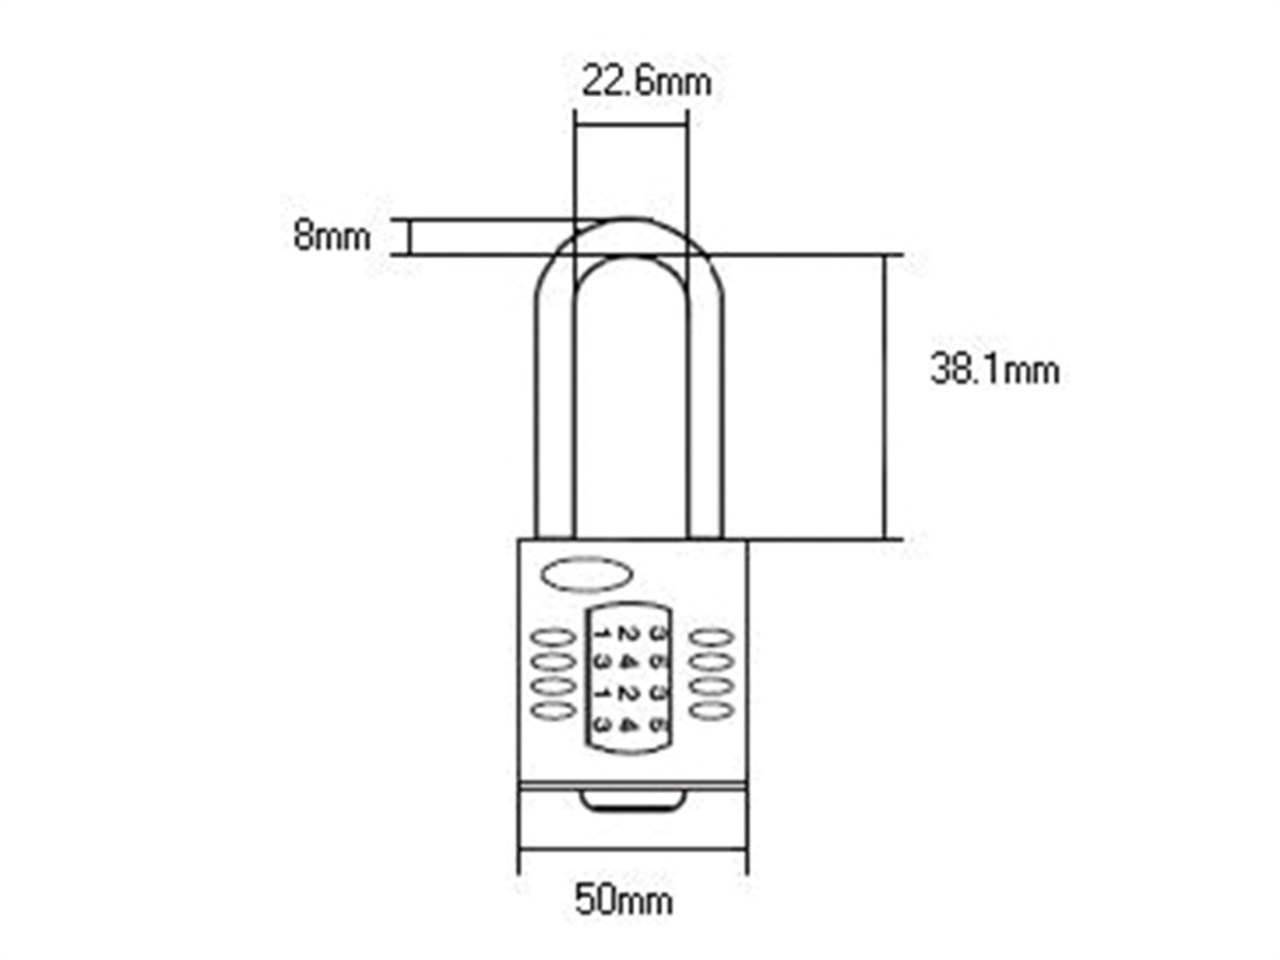 Henry Squire Cp50 15 38mm Long Shackle Combination Padlock 50mm Lock Diagram Authorised Reseller